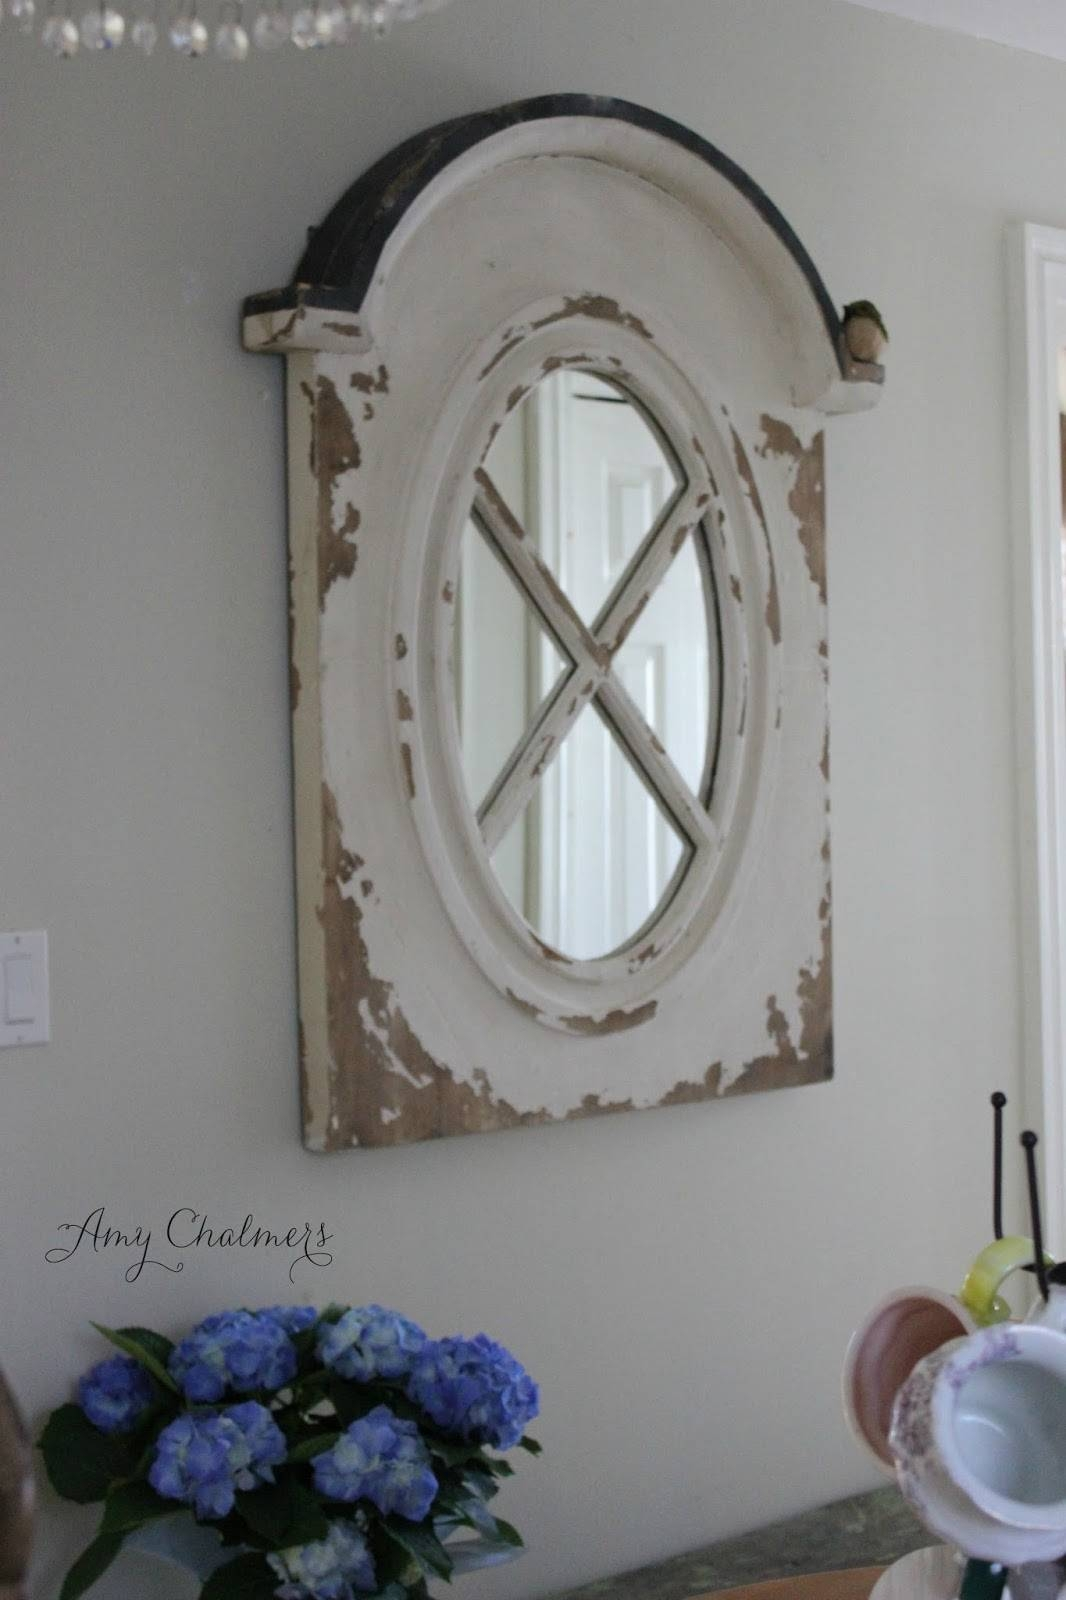 Maison Decor: My Cottage Kitchen intended for Reproduction Mirrors (Image 15 of 25)